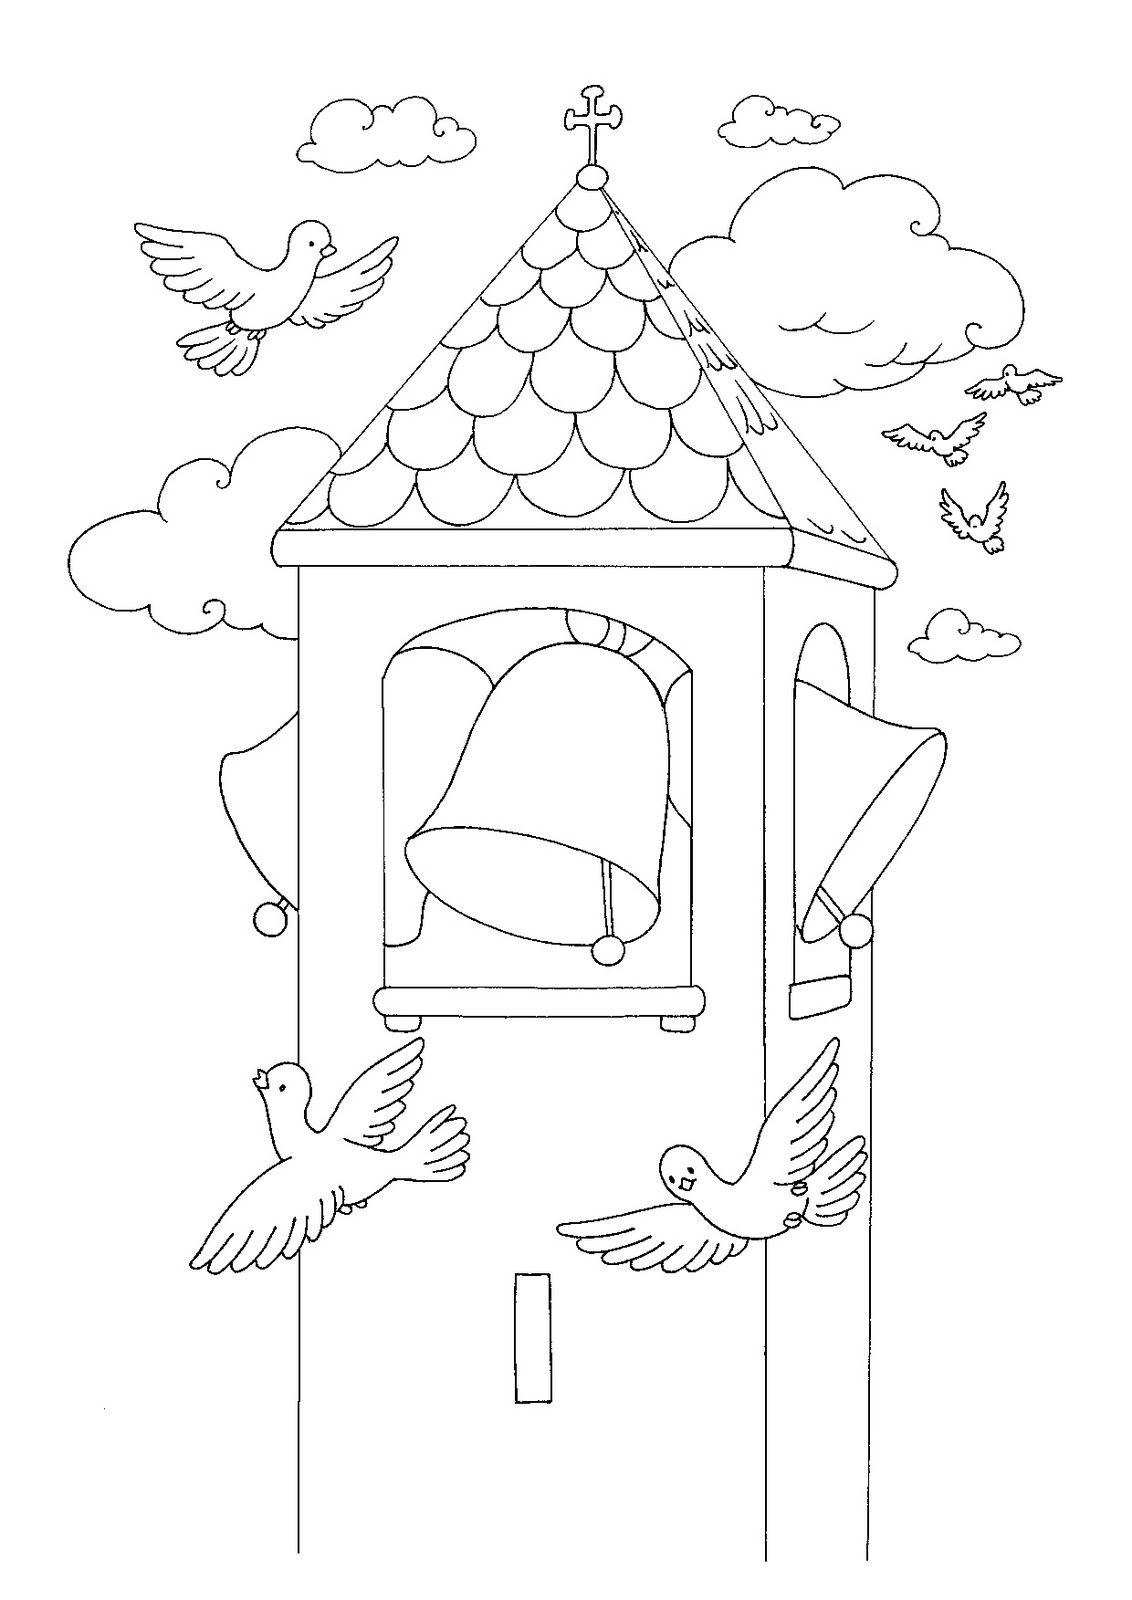 27+ Christmas in italy coloring pages info